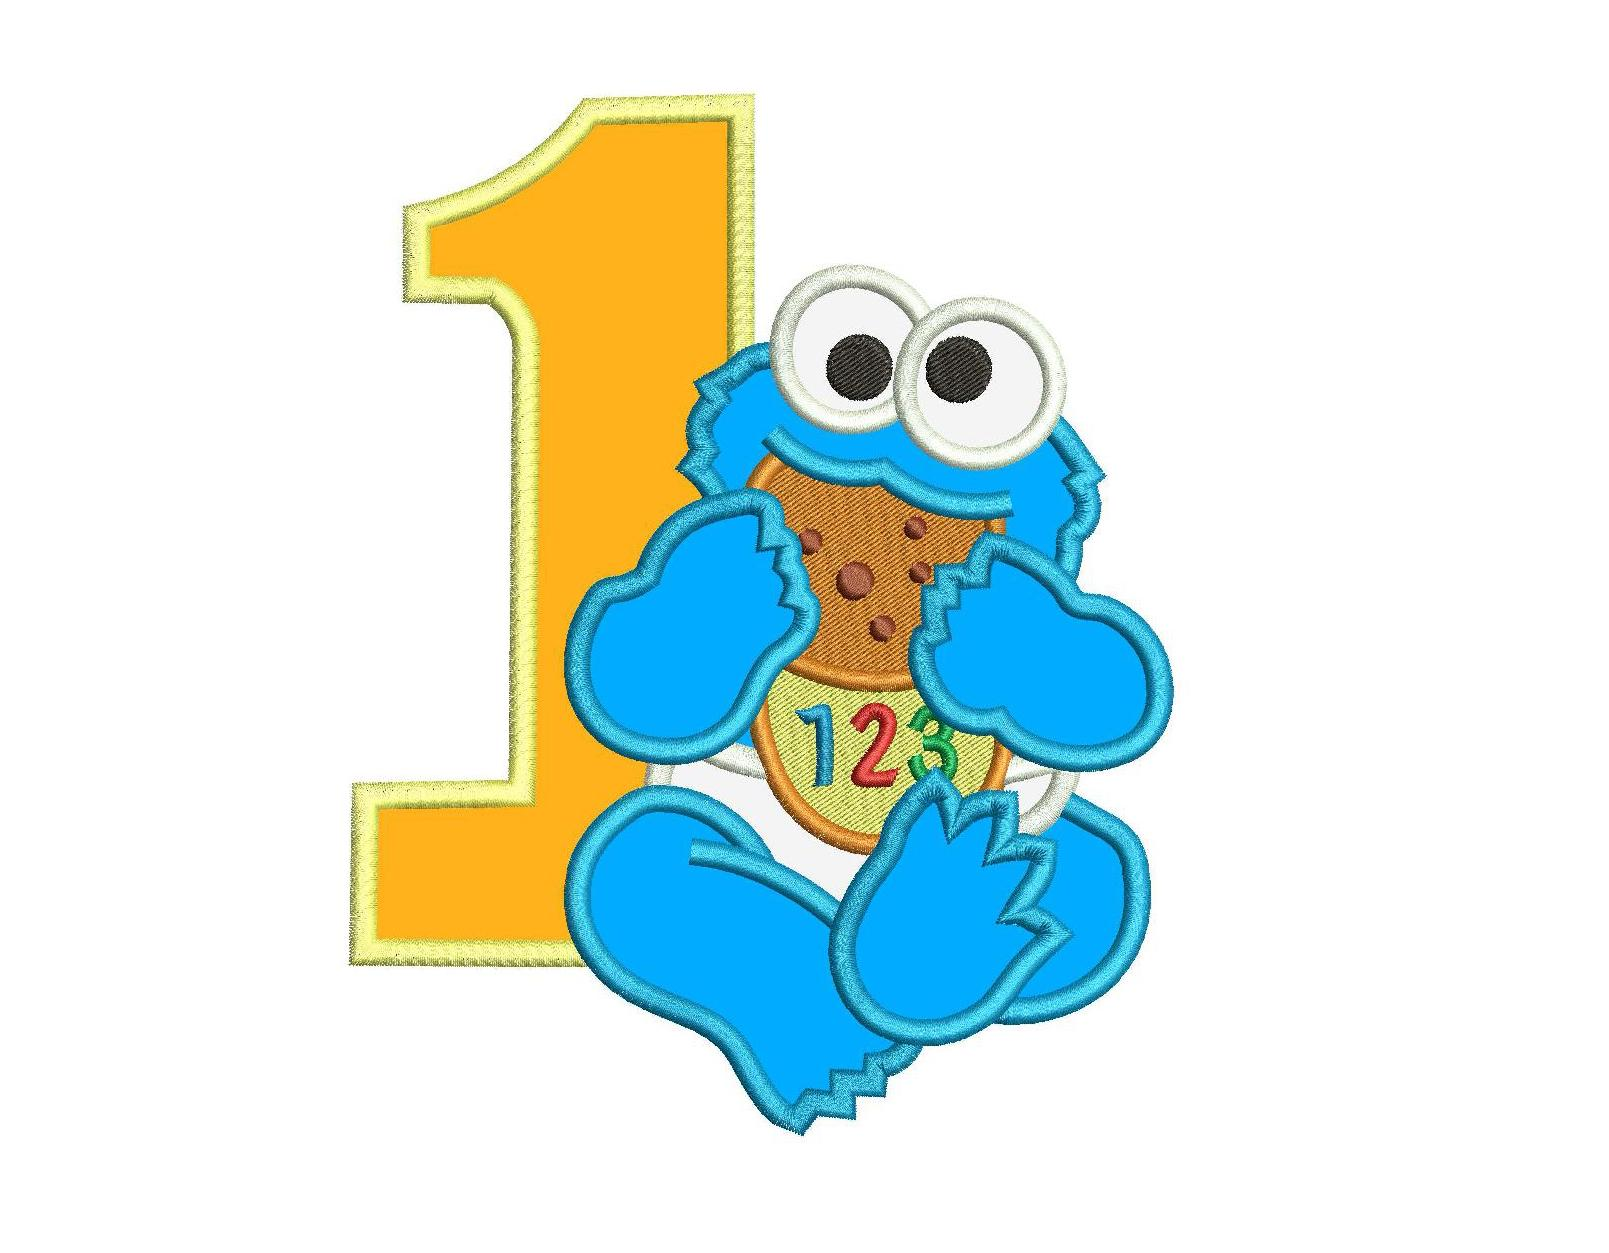 564 Cookie Monster free clipart.